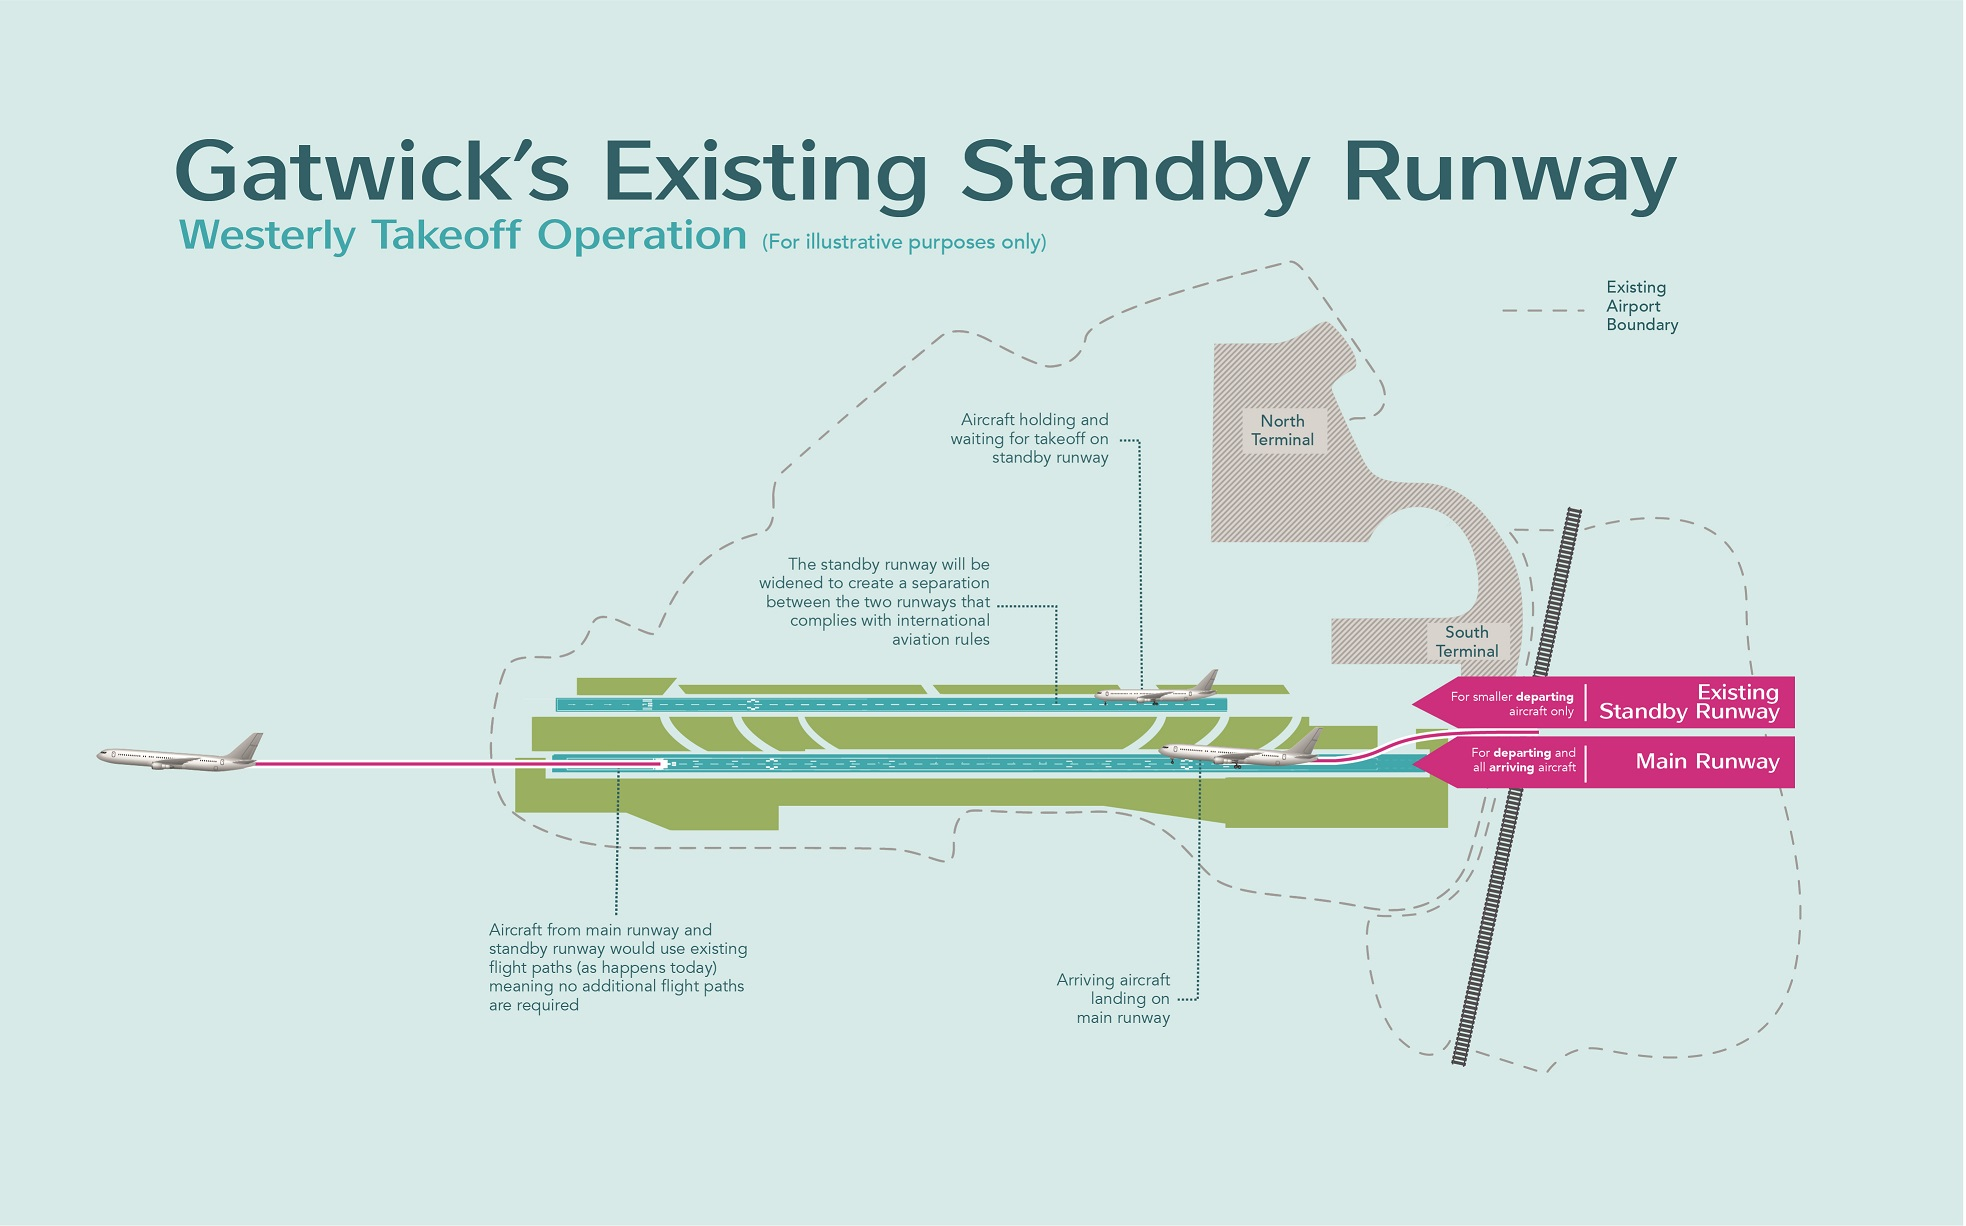 Gatwick plans using emergency runway to increase flight capacity